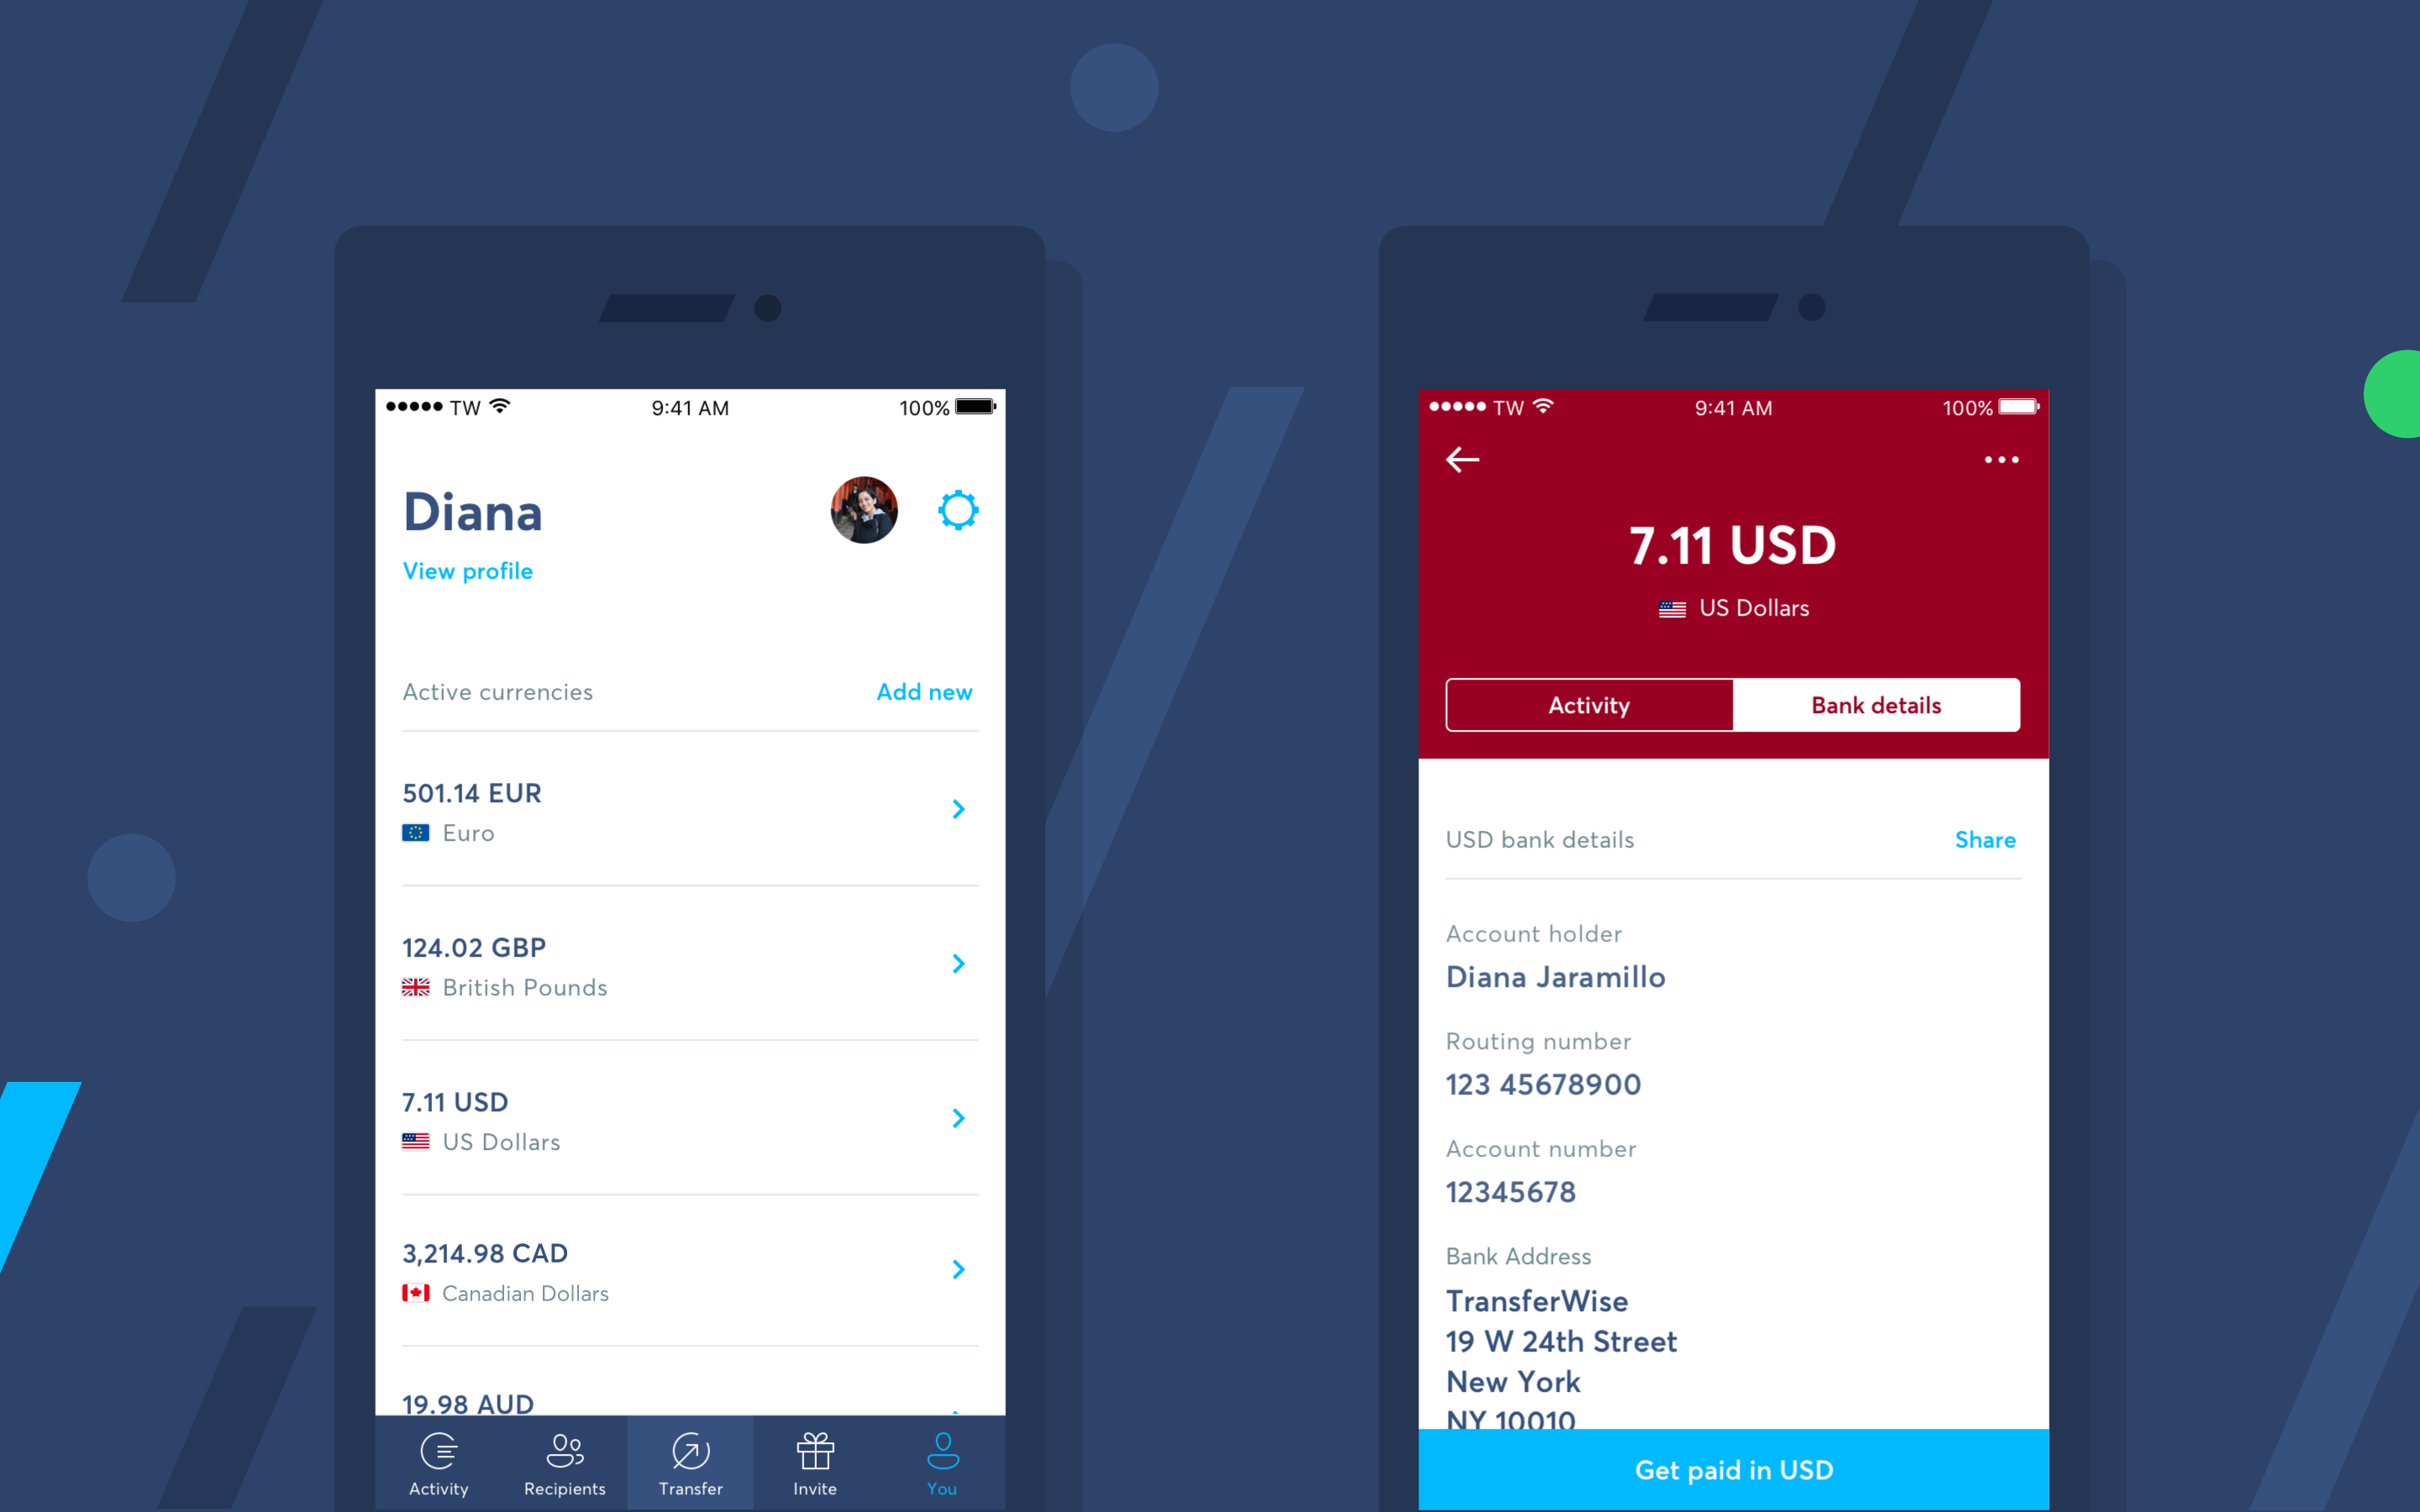 An image showing the TransferWise Borderless account interface on mobile